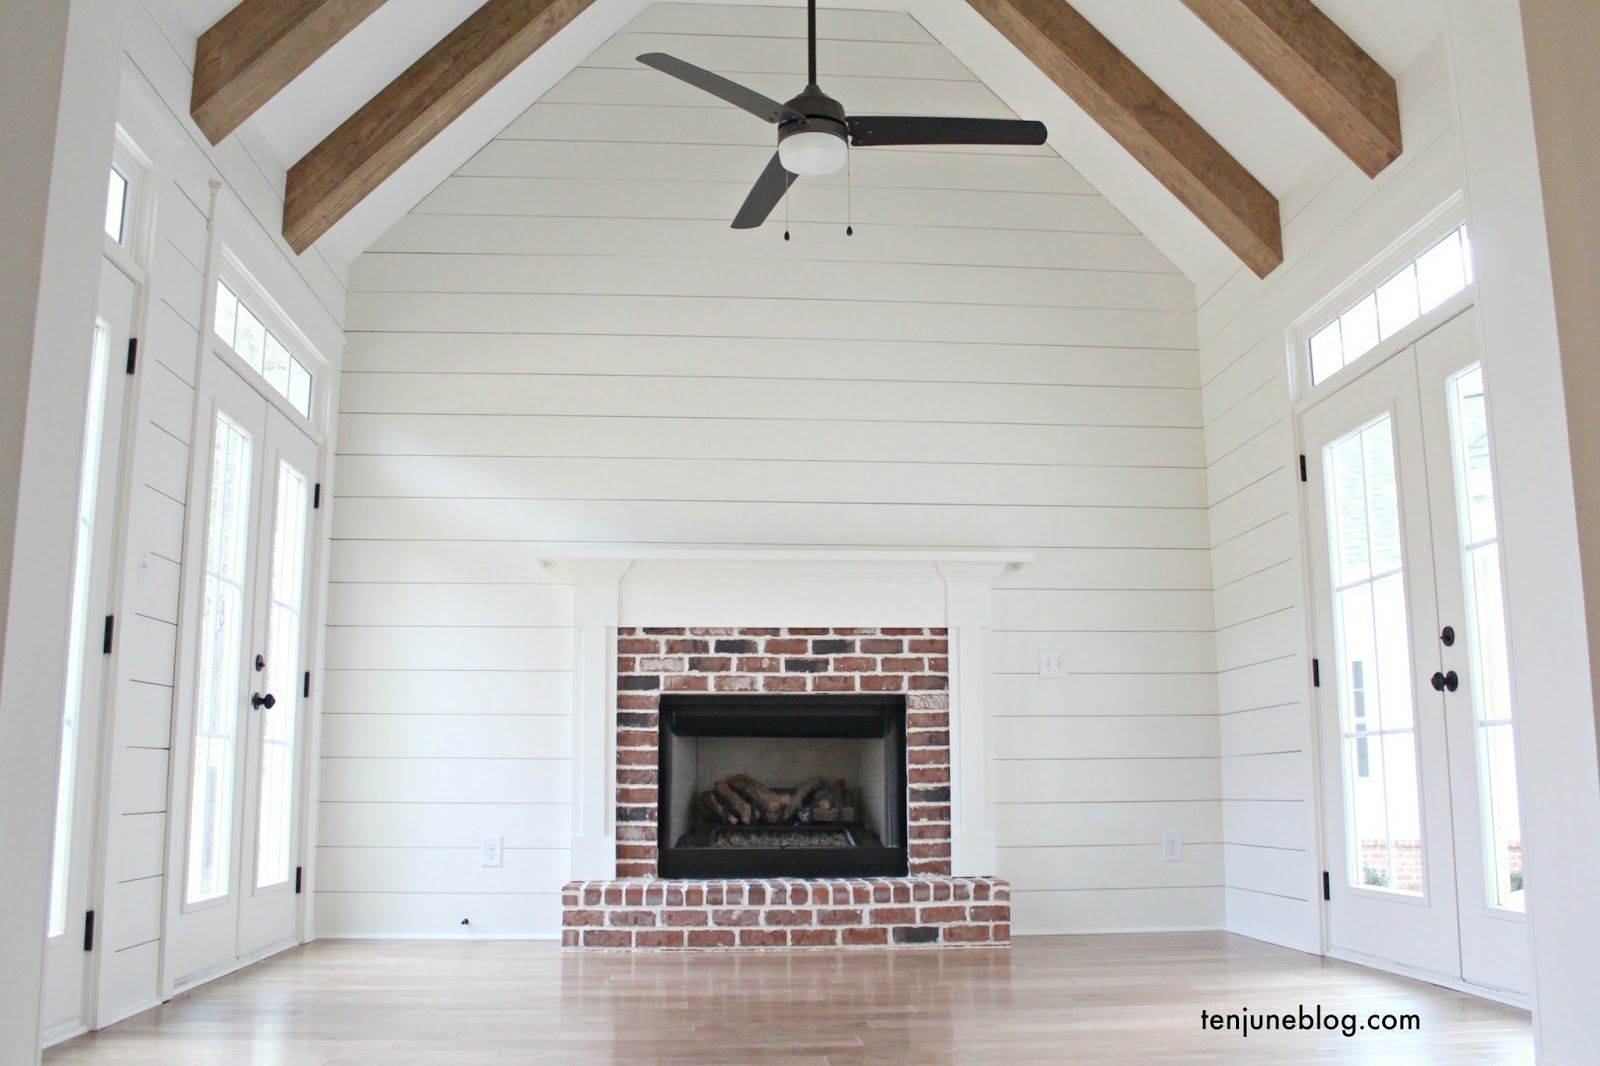 Ten June The Farmhouse A Tour Of Living Keeping Room Rustic Brick Craftsman Style Fireplace White Shiplap Walls Vaulted Ceiling With Wood